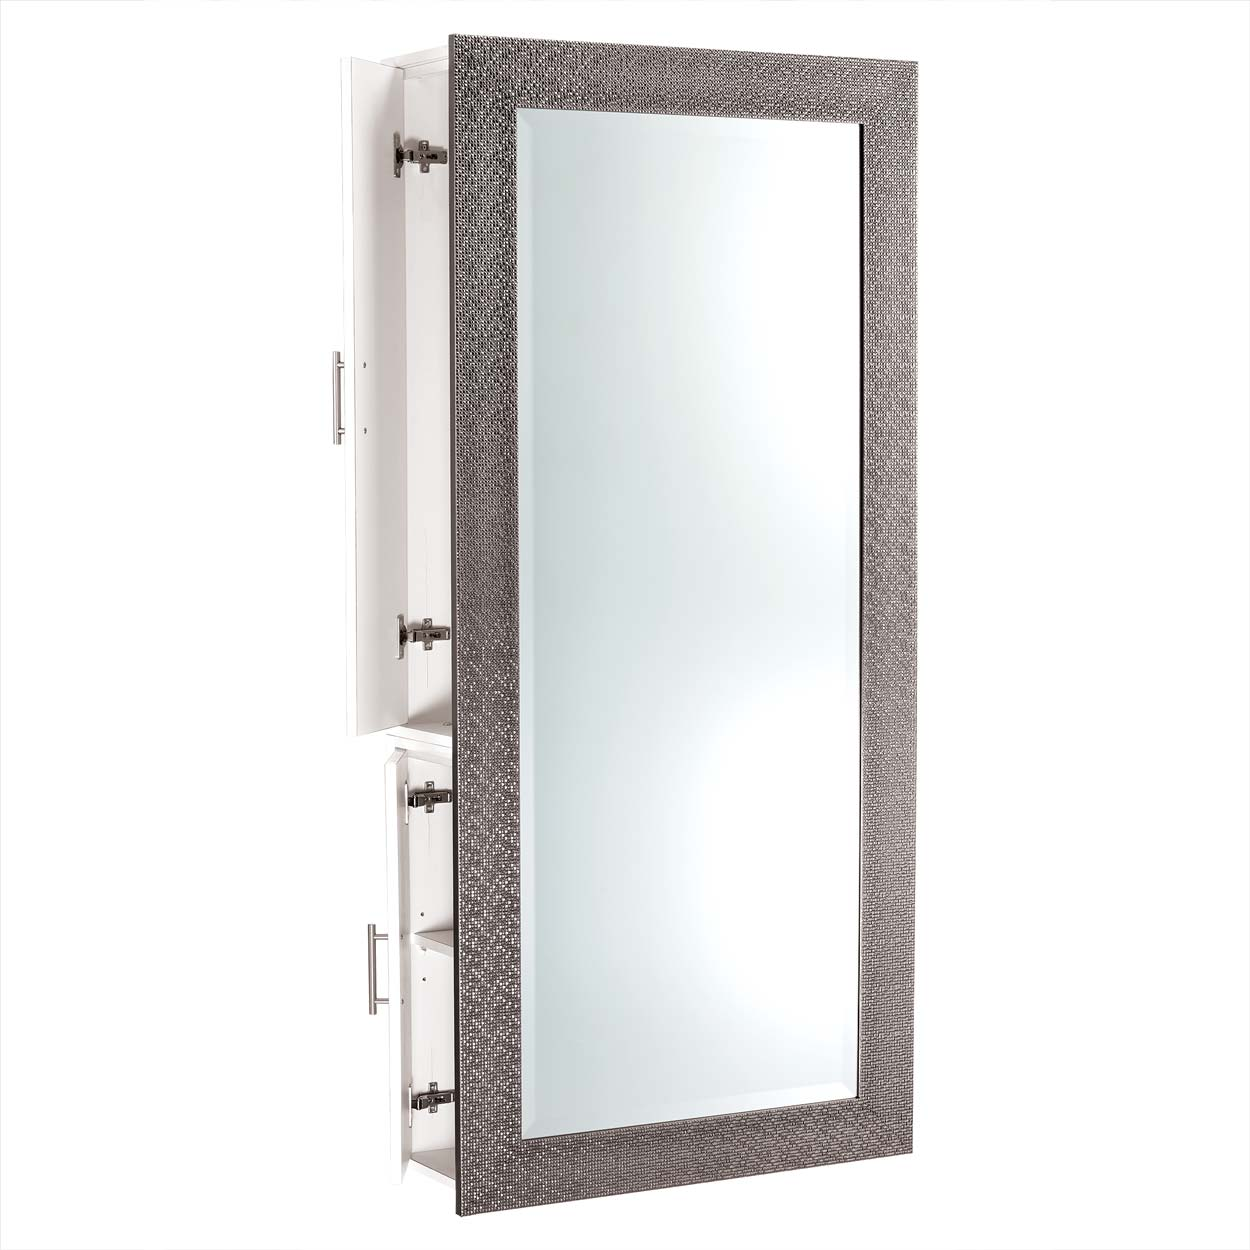 Diamond Framed Mirror Wall Hanging Styling Station alternative product image 7